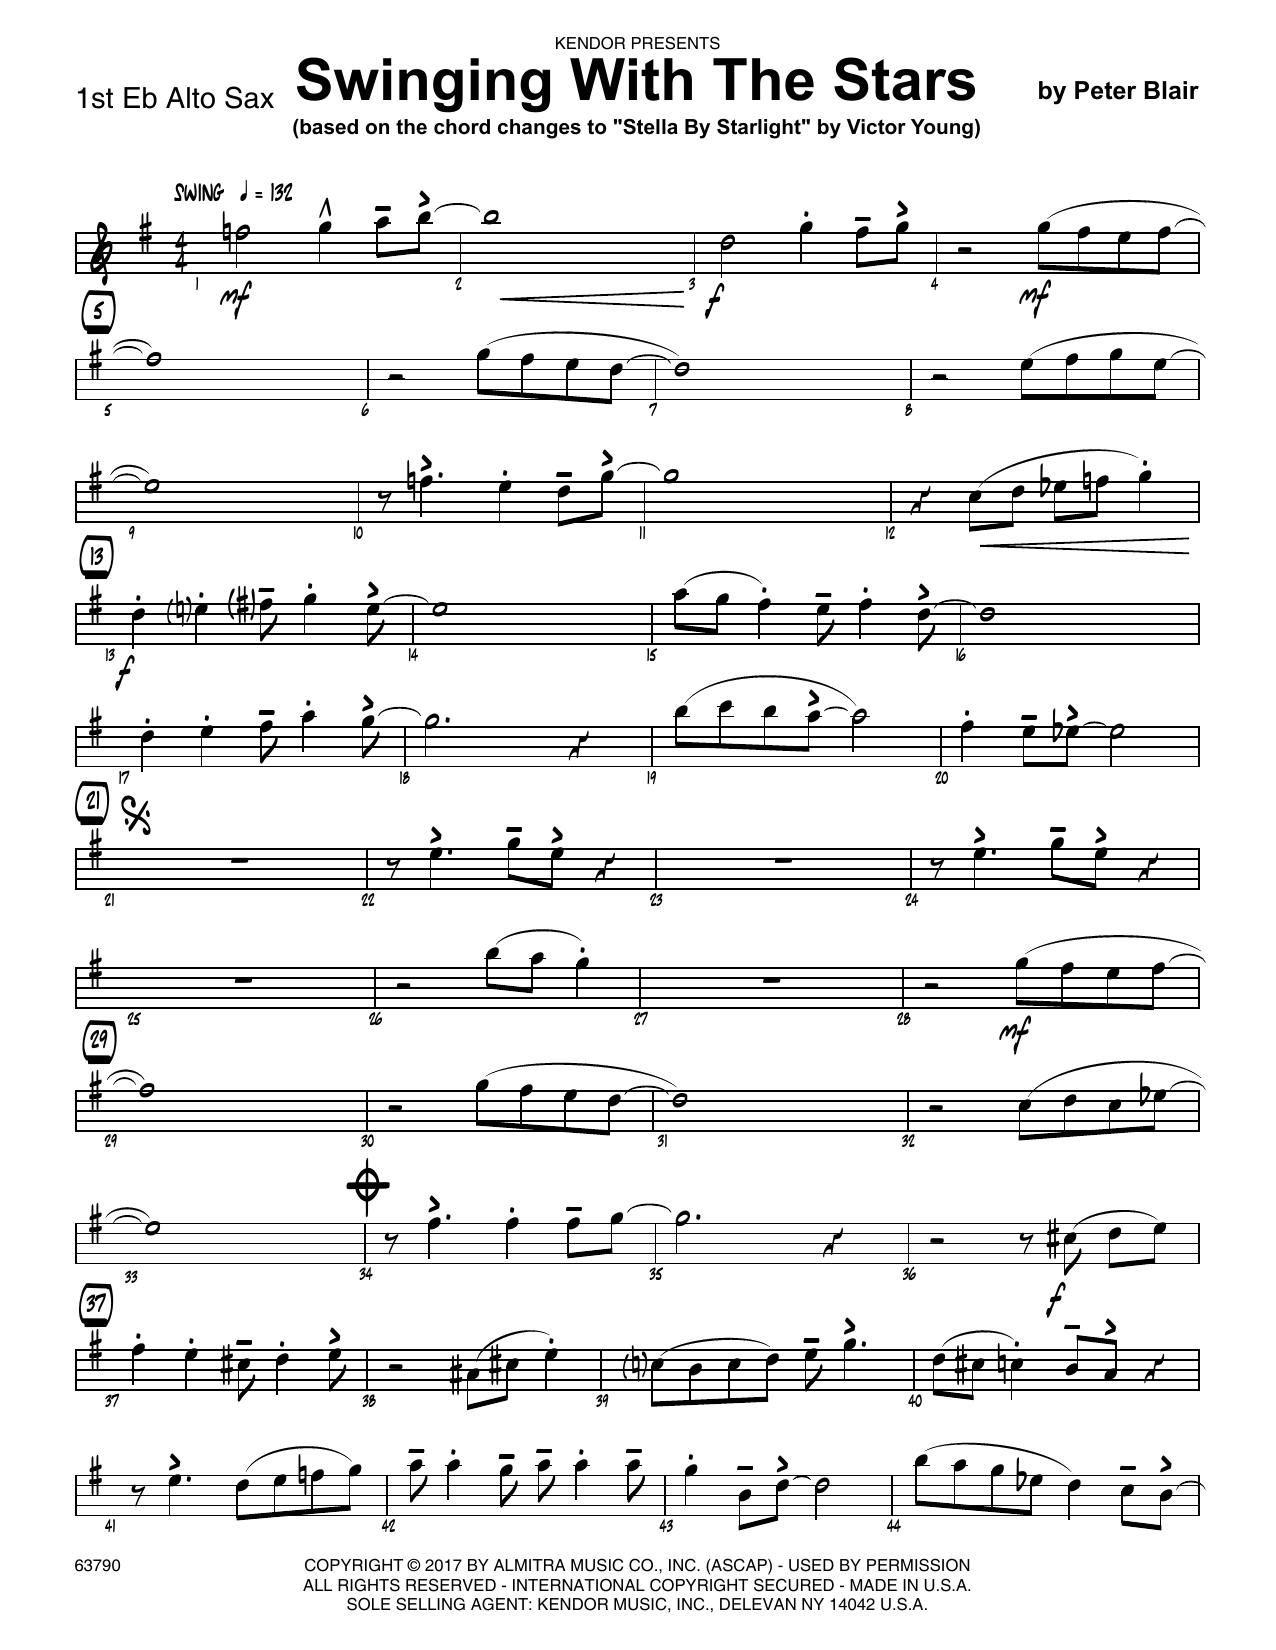 Peter Blair Swinging With The Stars (based on Stella By Starlight by Victor Young) - 1st Eb Alto Saxophone sheet music preview music notes and score for Jazz Ensemble including 2 page(s)